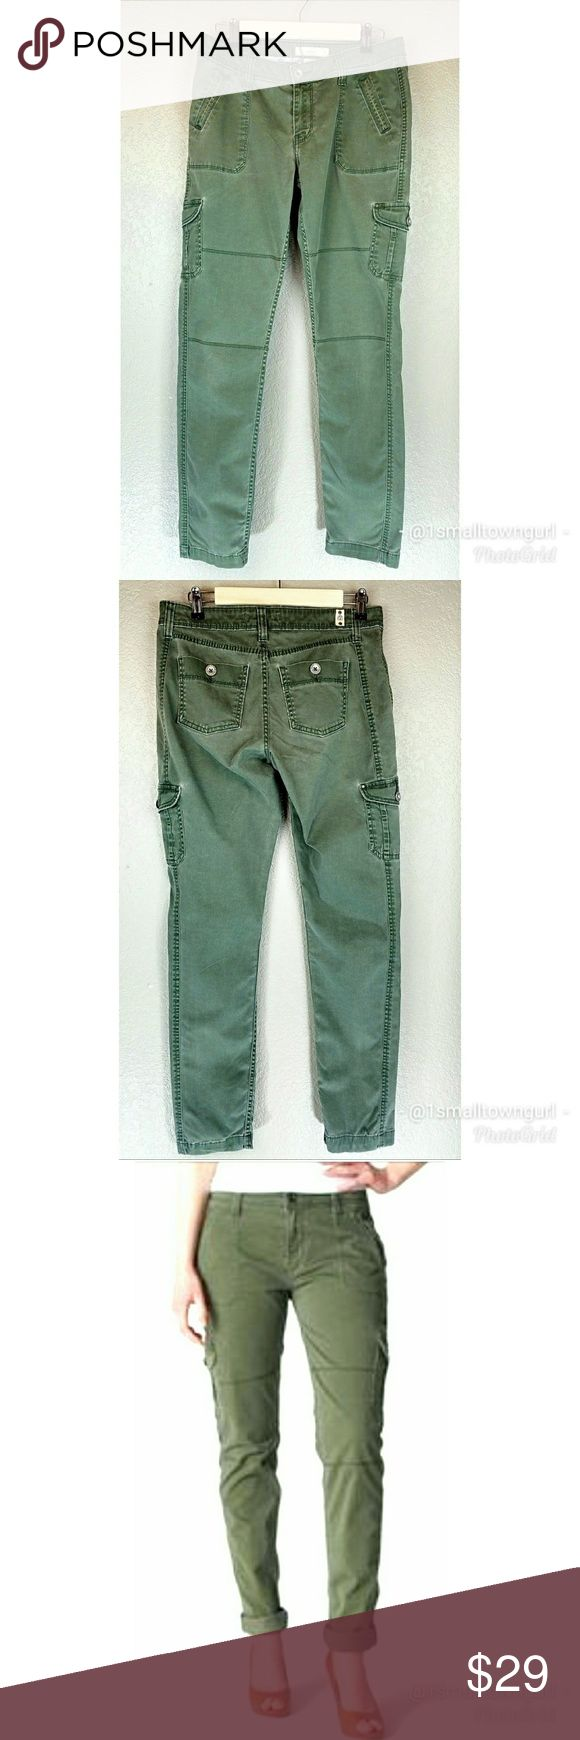 """Levi's 508 Original Chino Cargo Jeans Green 4 Levi's  508  Original Chino Cargo Jeans  Tapered leg Size: 4 Waist: 14"""" Inseam: 32 Rise: 3"""" Excellent condition Levi's Jeans Skinny"""